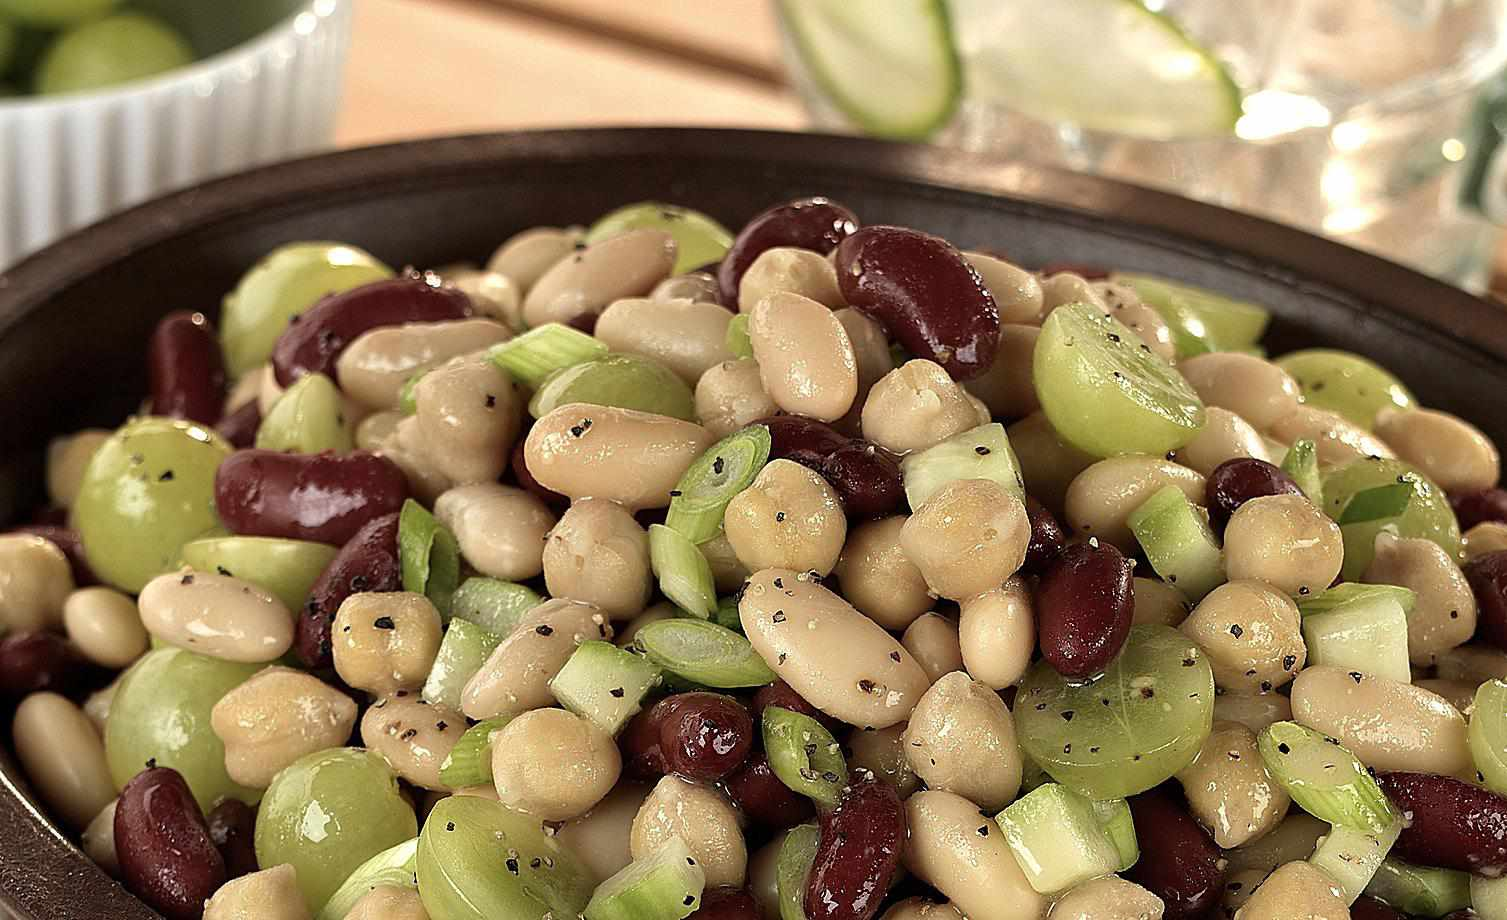 Grape salad recipe with three beans - the perfect cooling summer salad